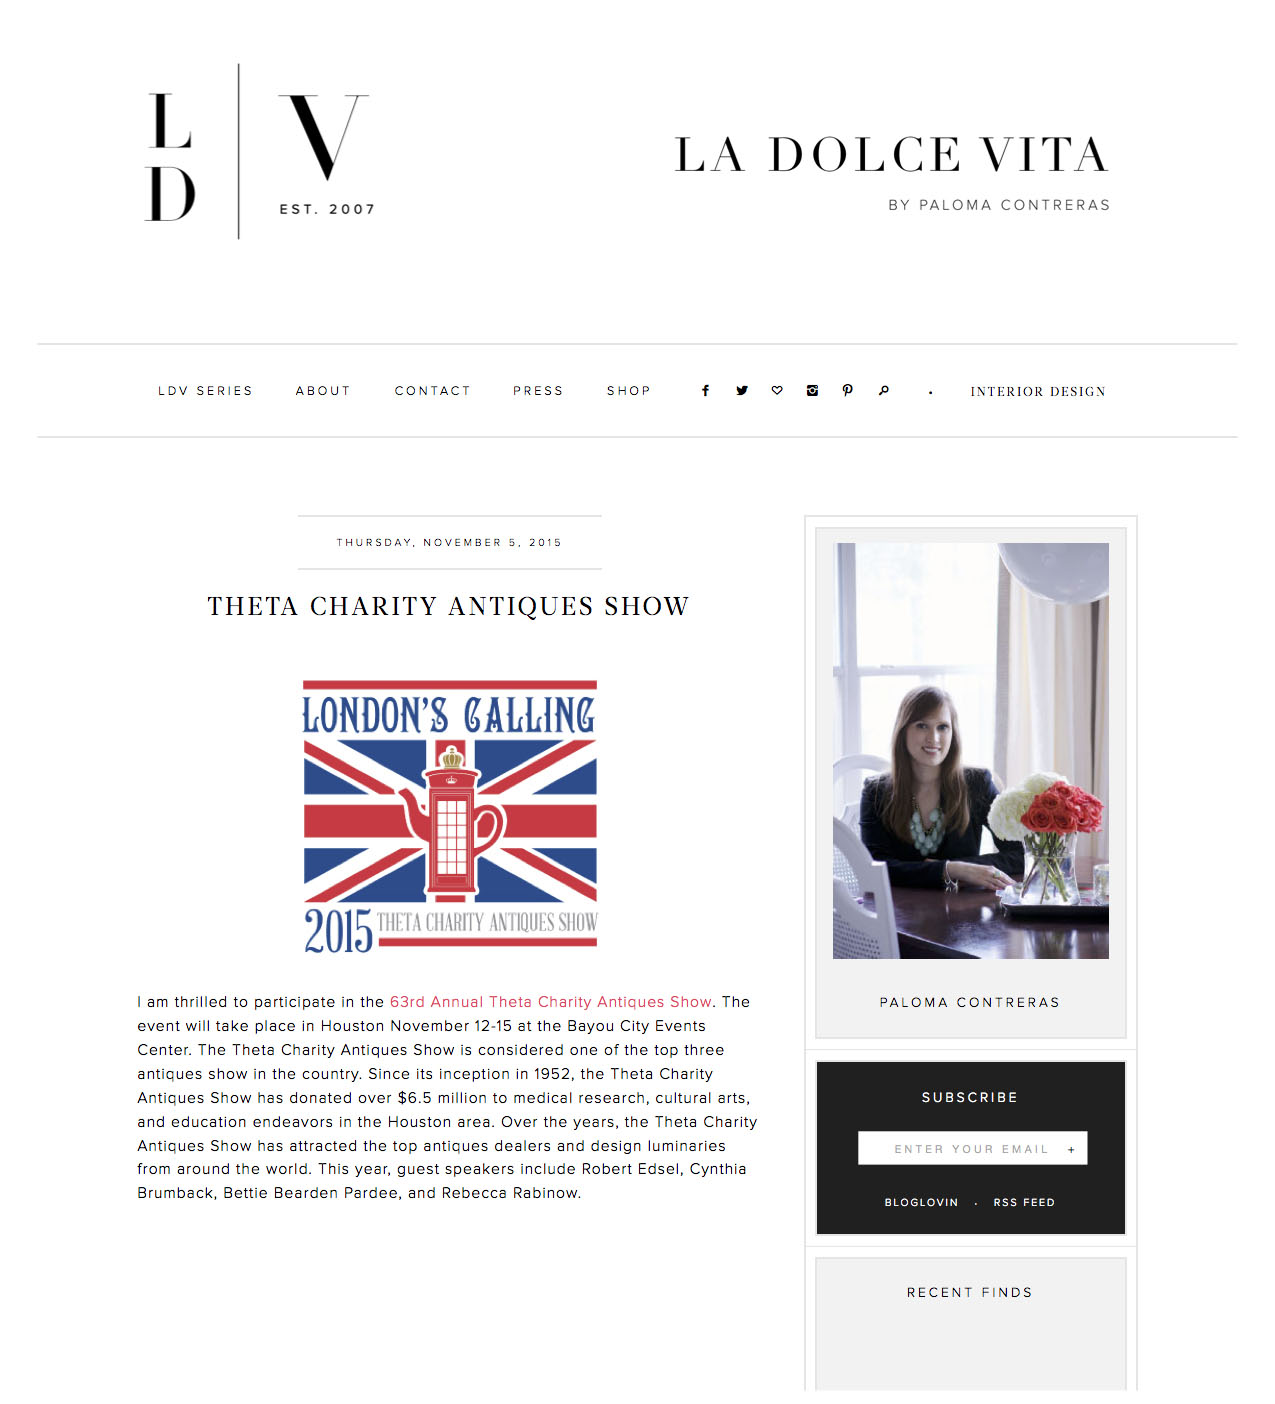 La Dolce Vita Blog November 5, 2015